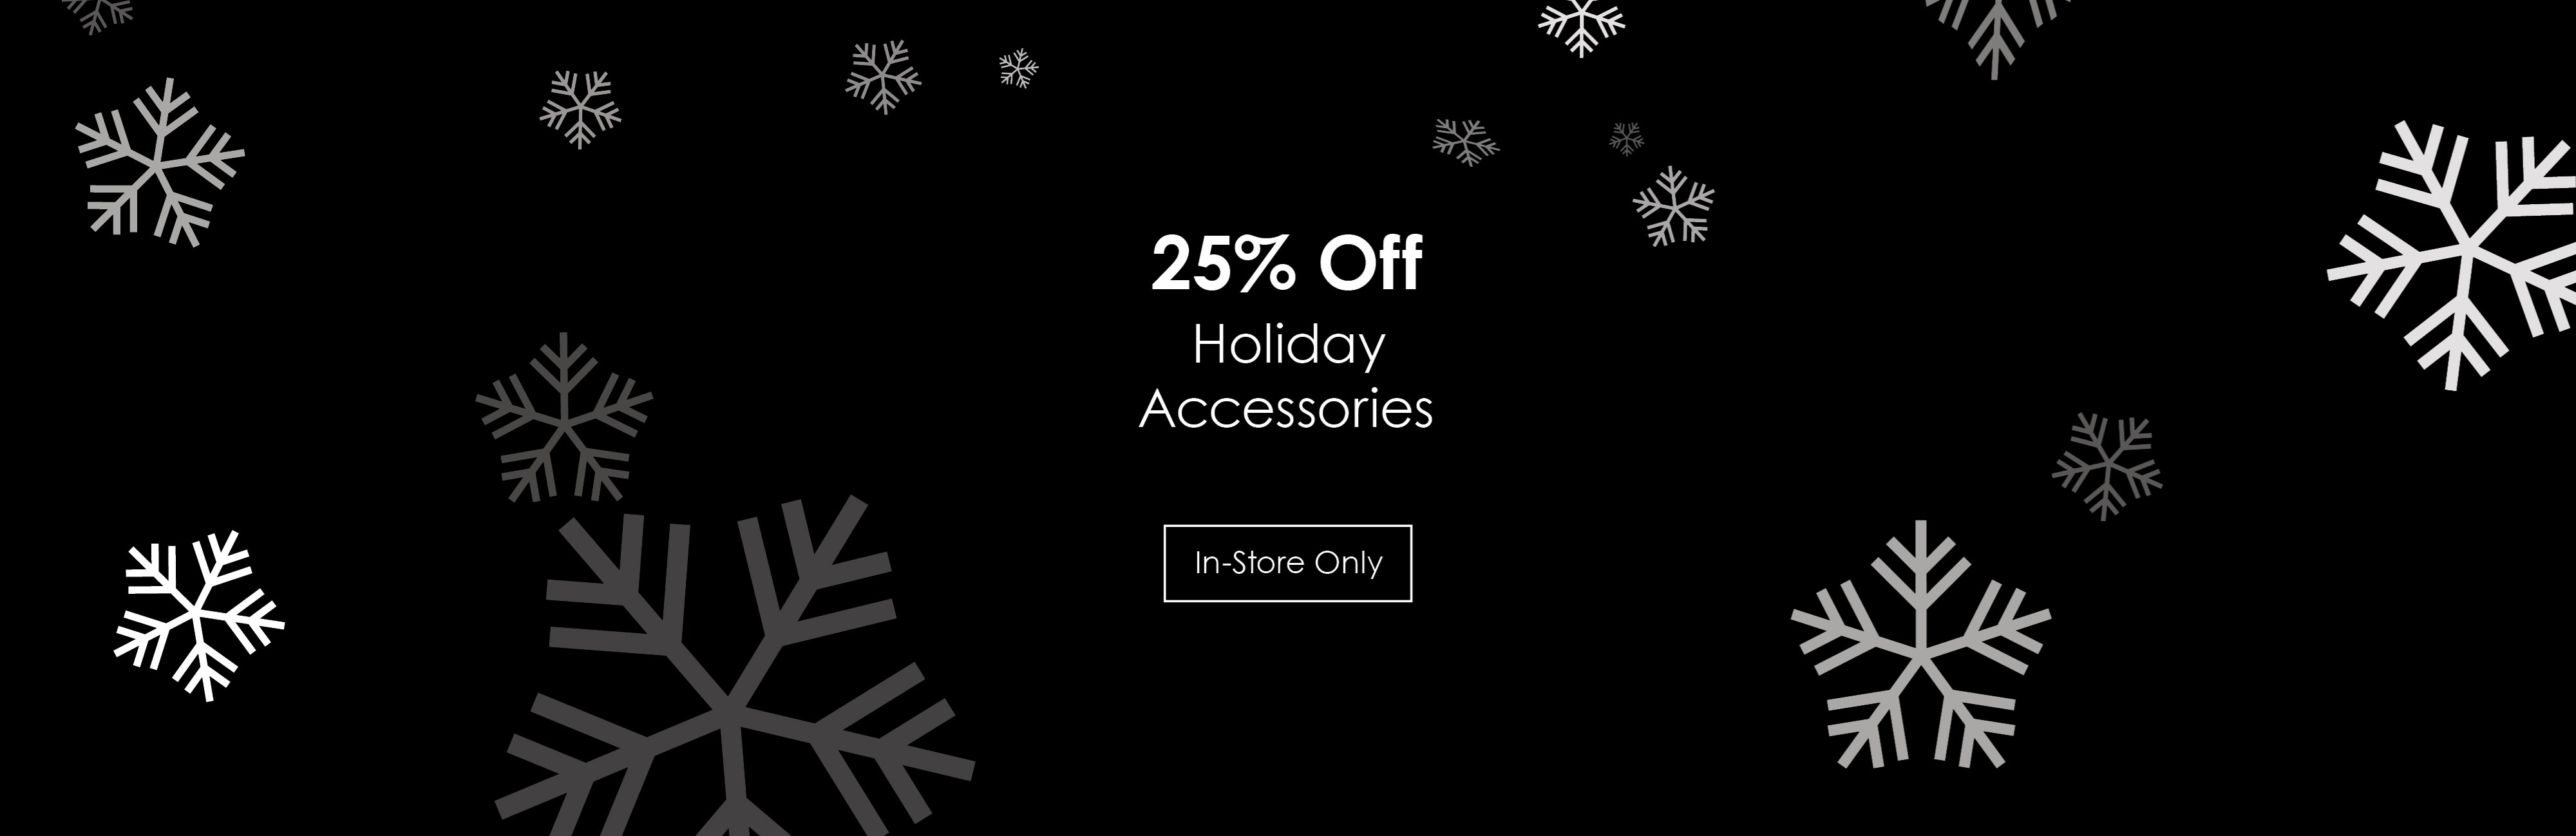 25% off holiday accessories; see store for details.